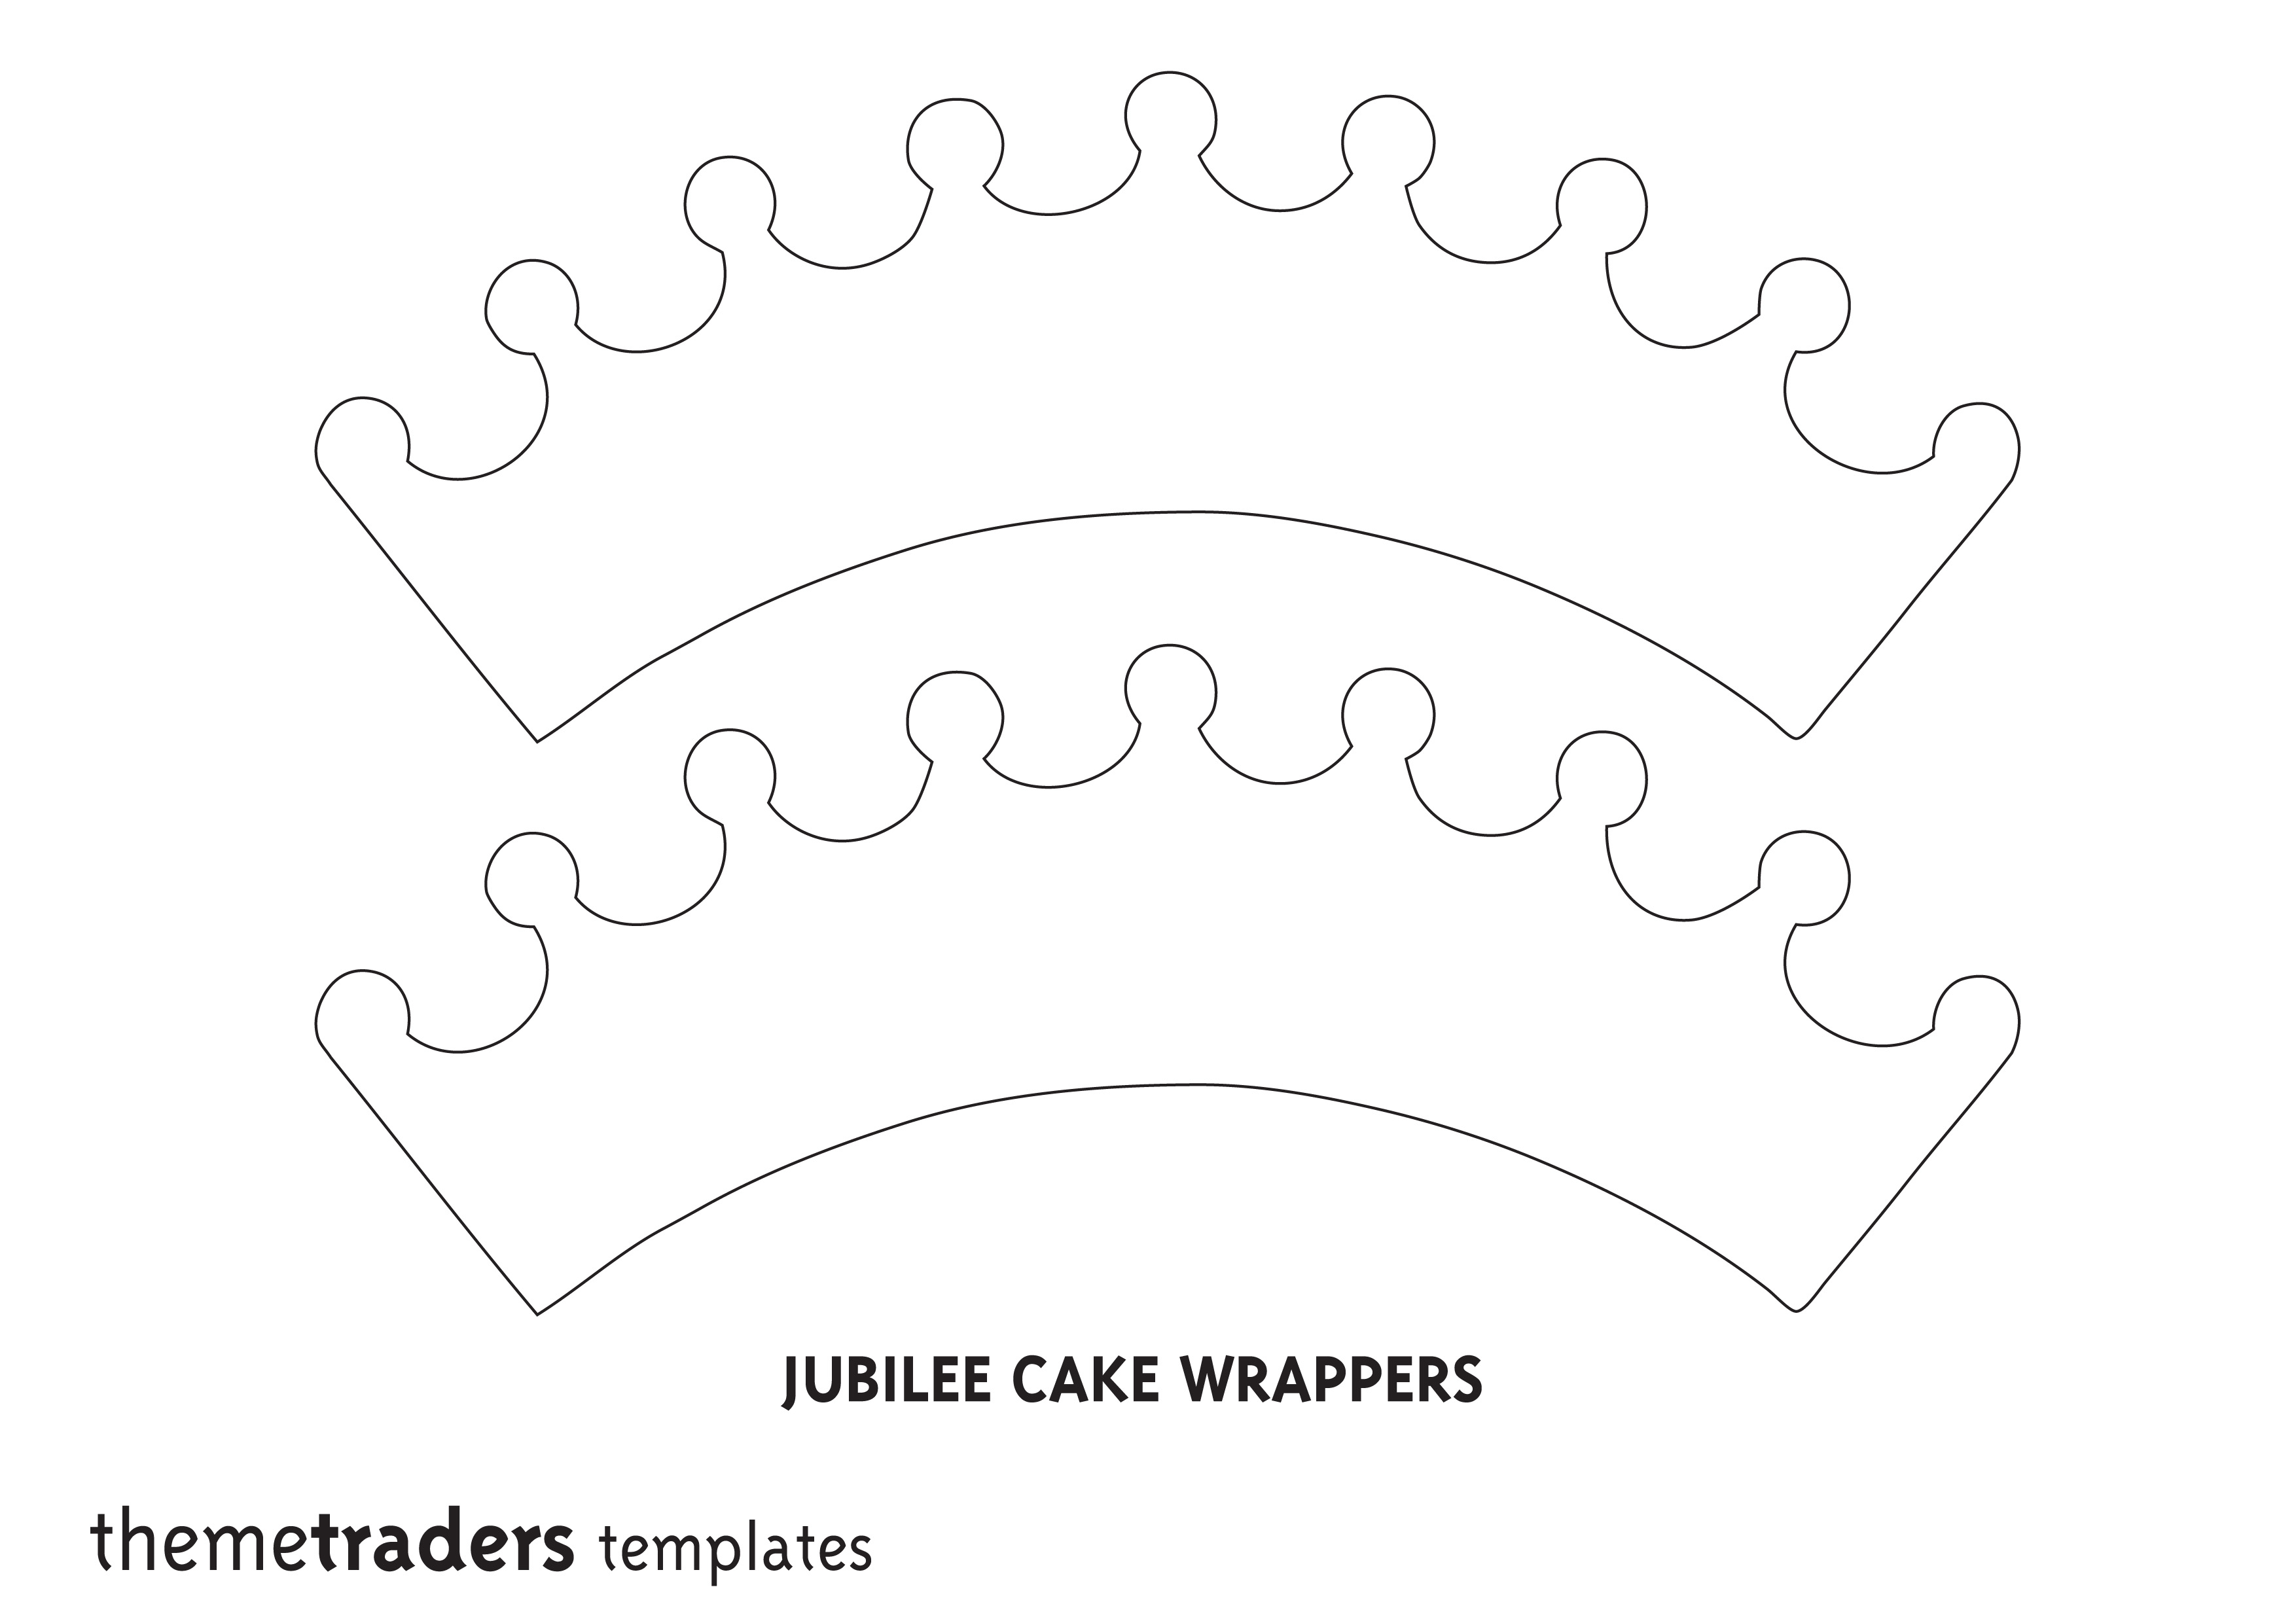 paper crown template for adults - template birthday crown invitation templates